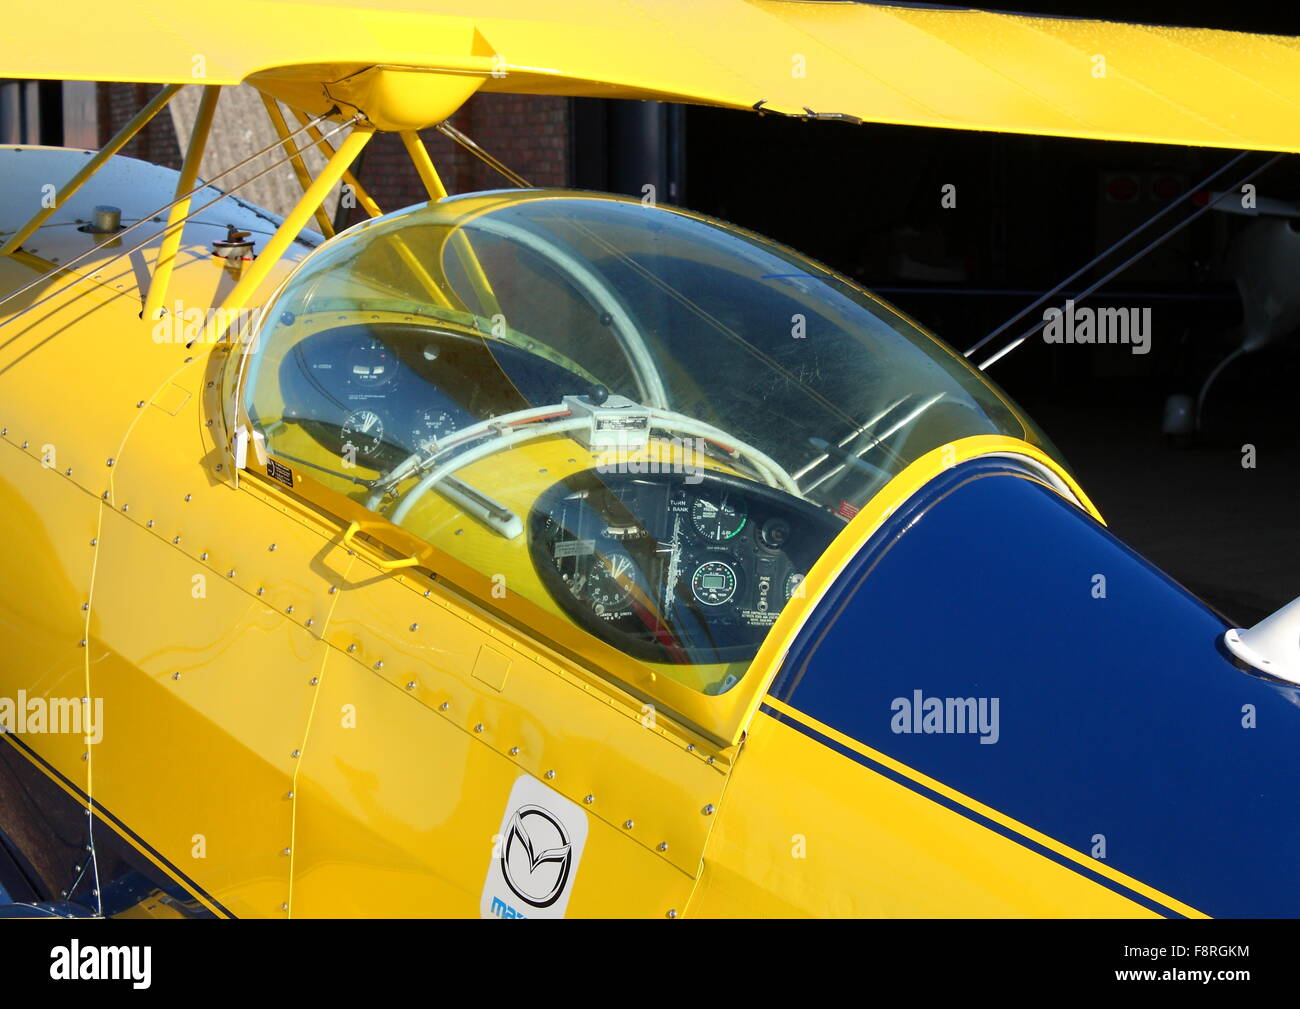 Pitts Special G-ODDS parked at White Waltham Airfield in front of a hangar - Stock Image